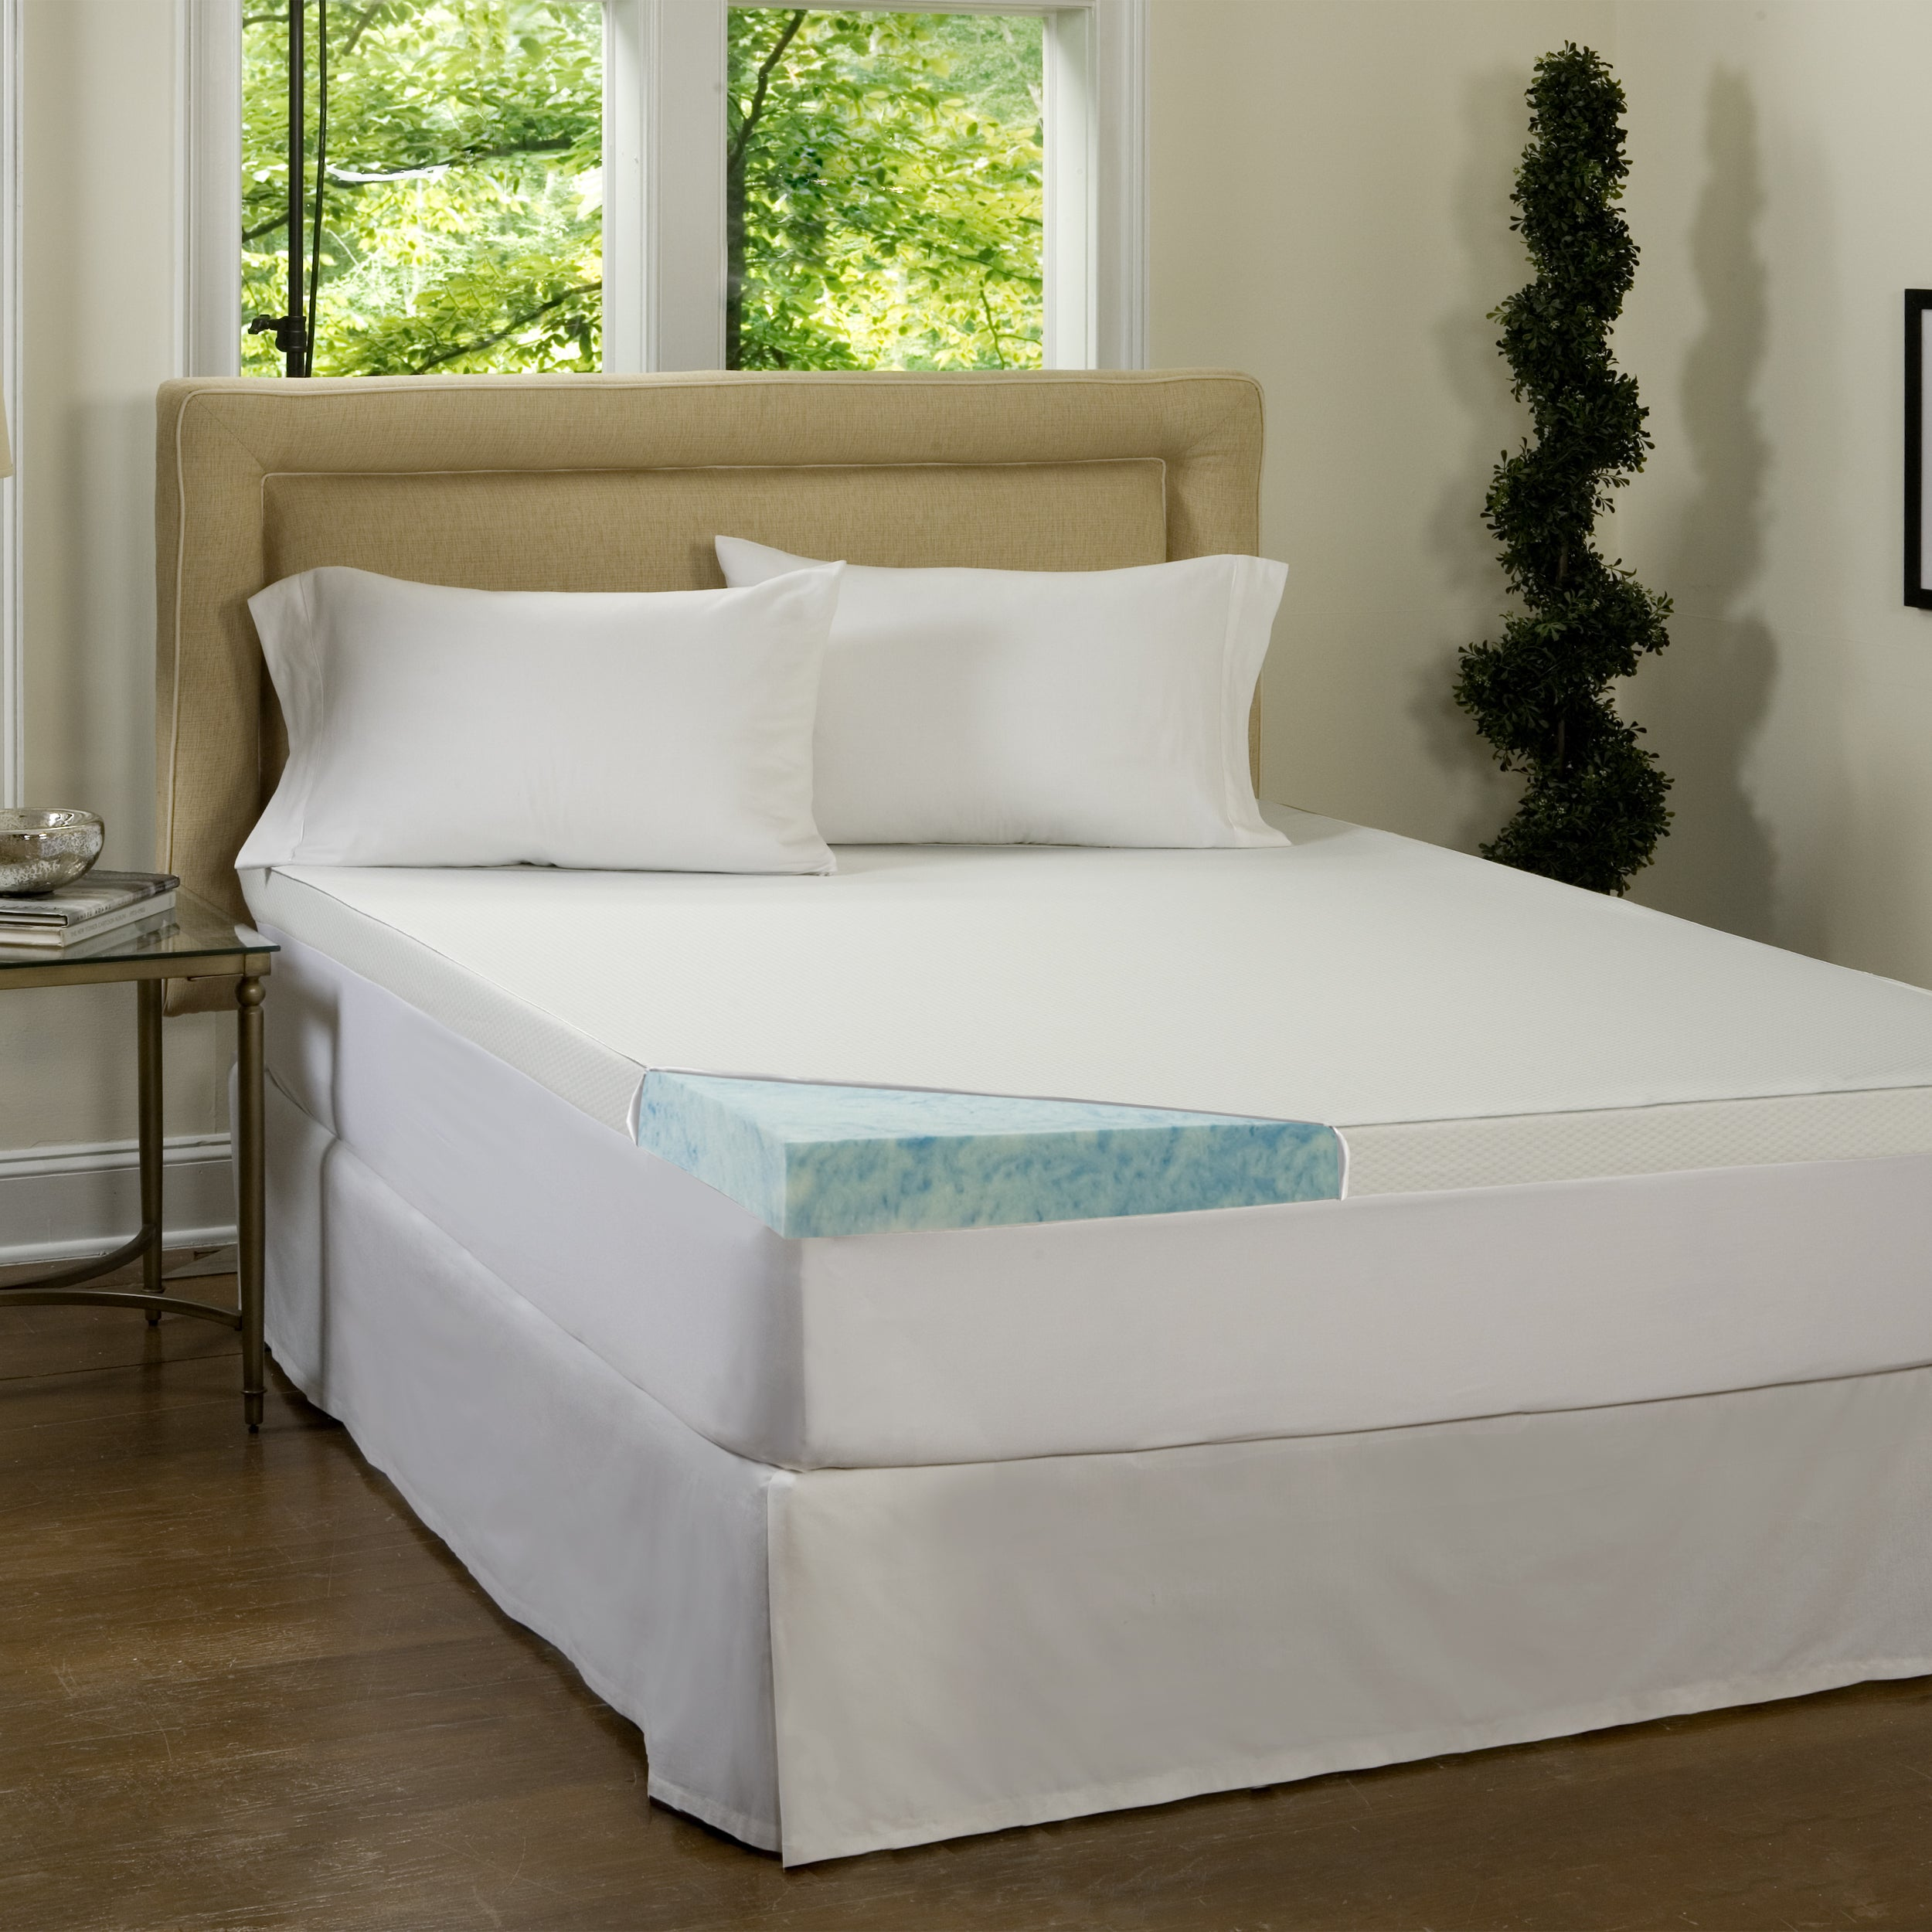 dillards pads mattress white home zi c toppers bedding pad cool